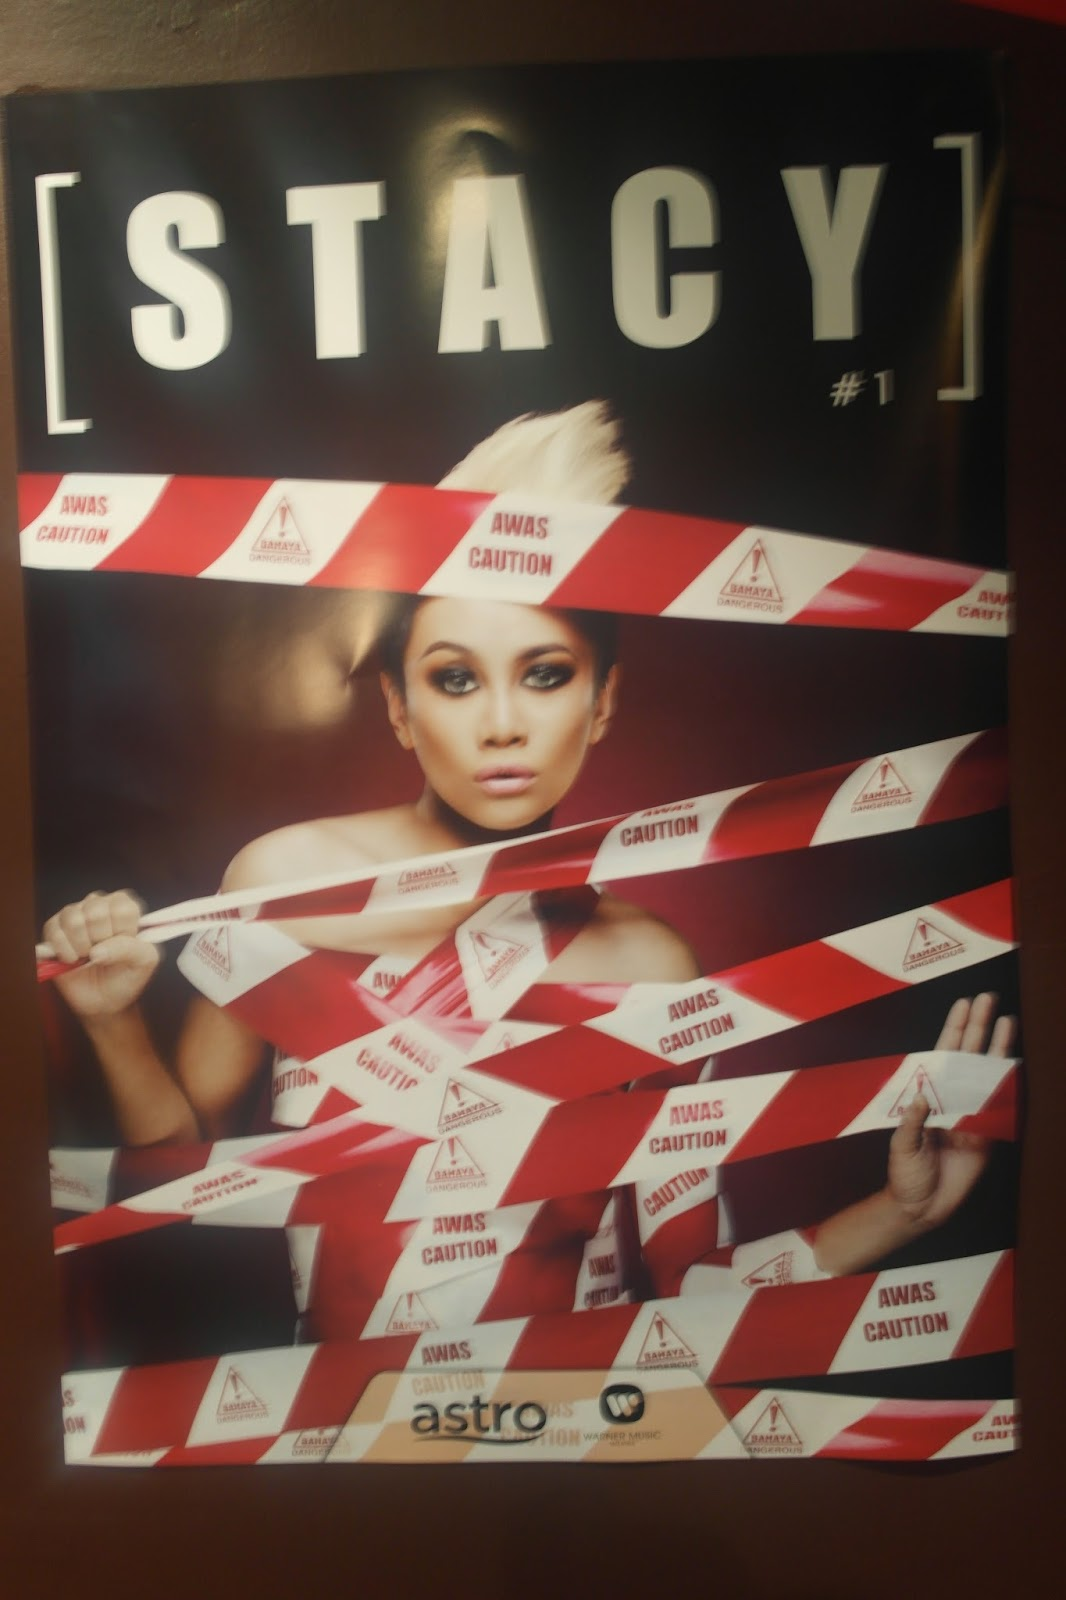 Kulit album Stacy 1